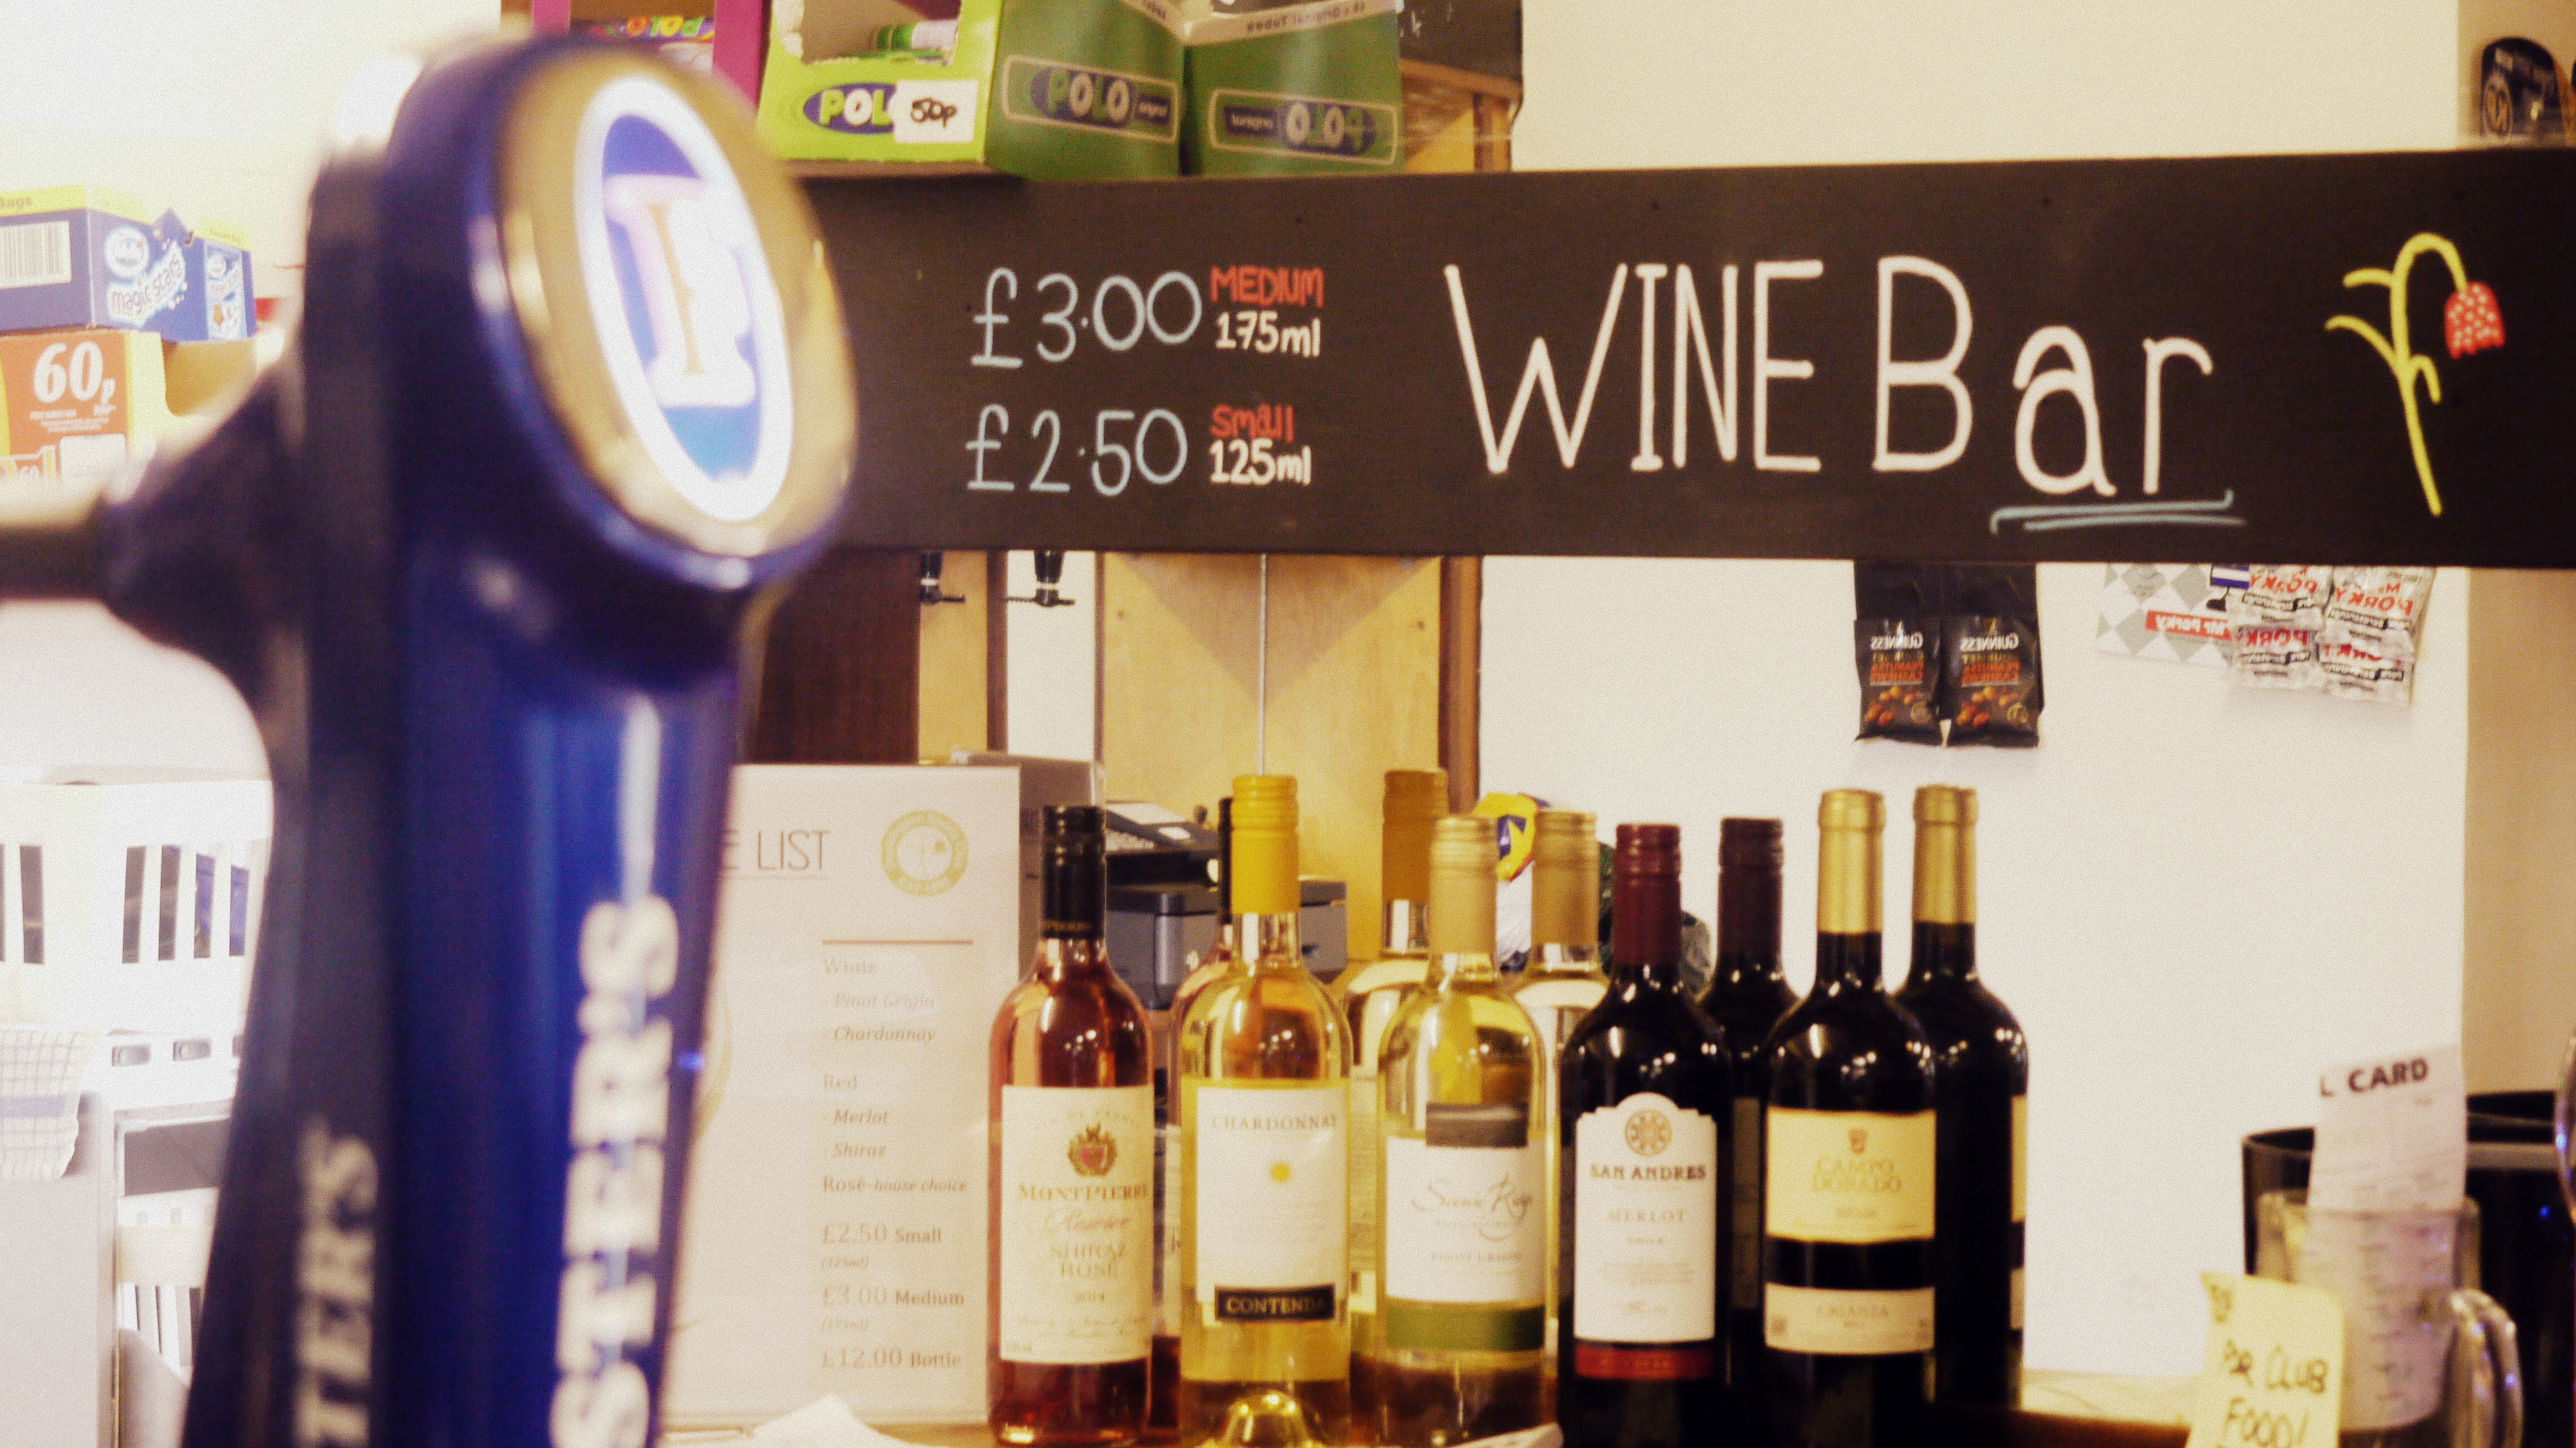 Our wine bar